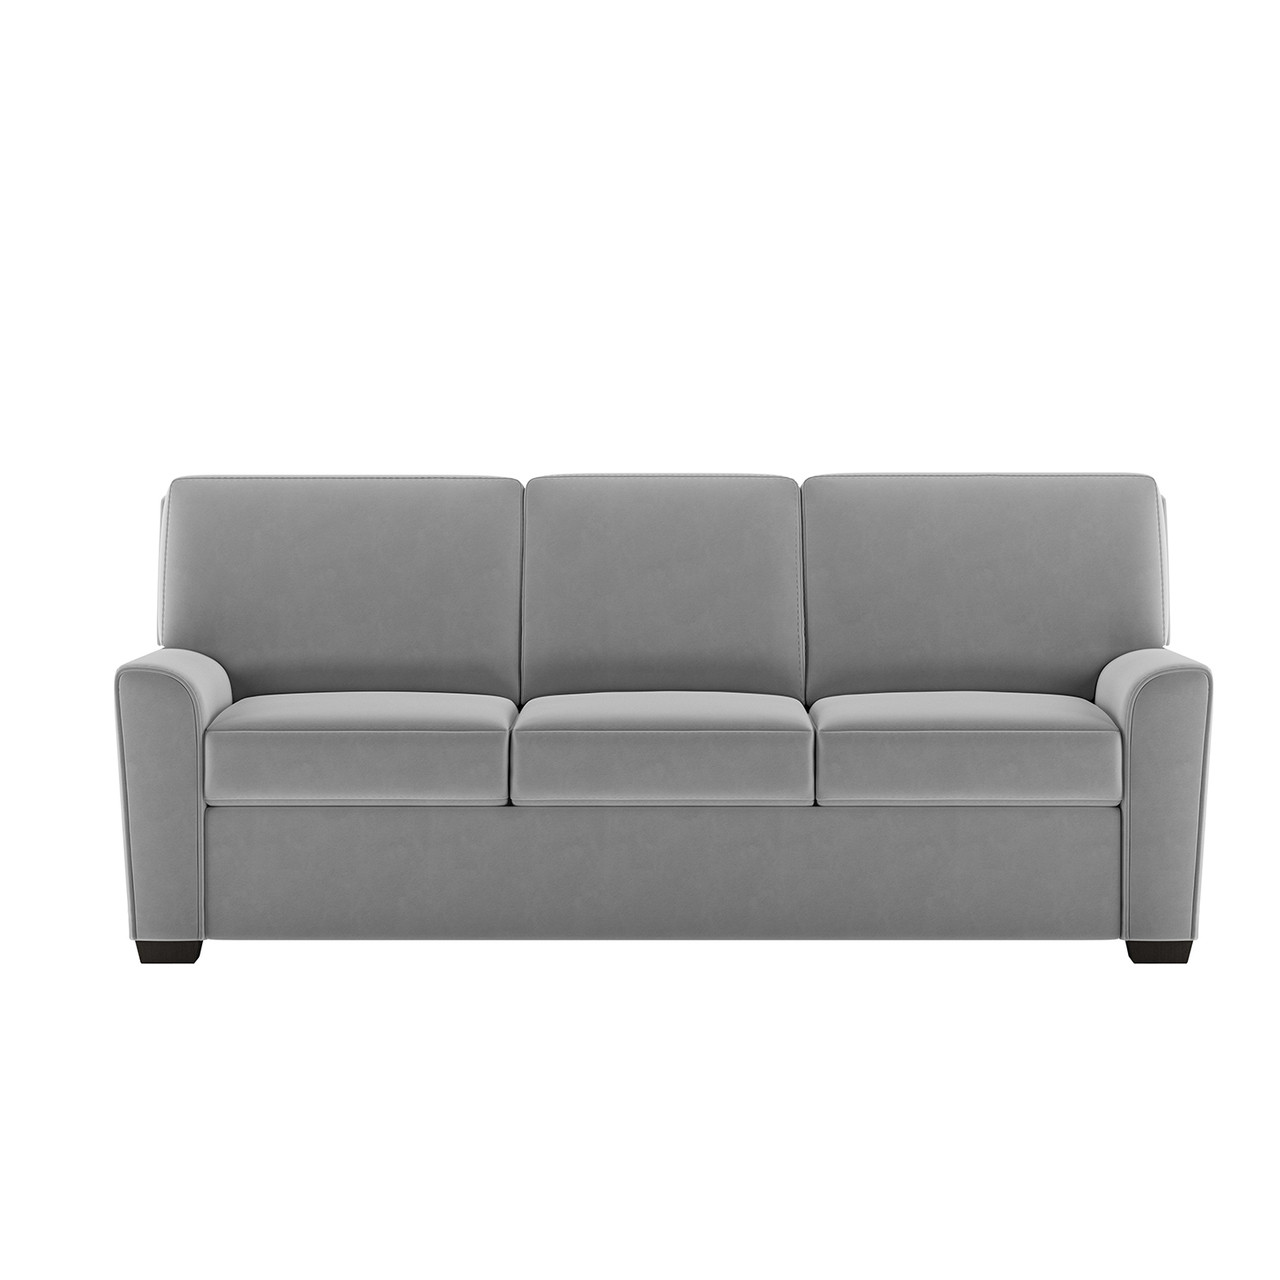 King Comfort Sleeper® in Suede Life Flint Fabric with Espresso Finish Legs